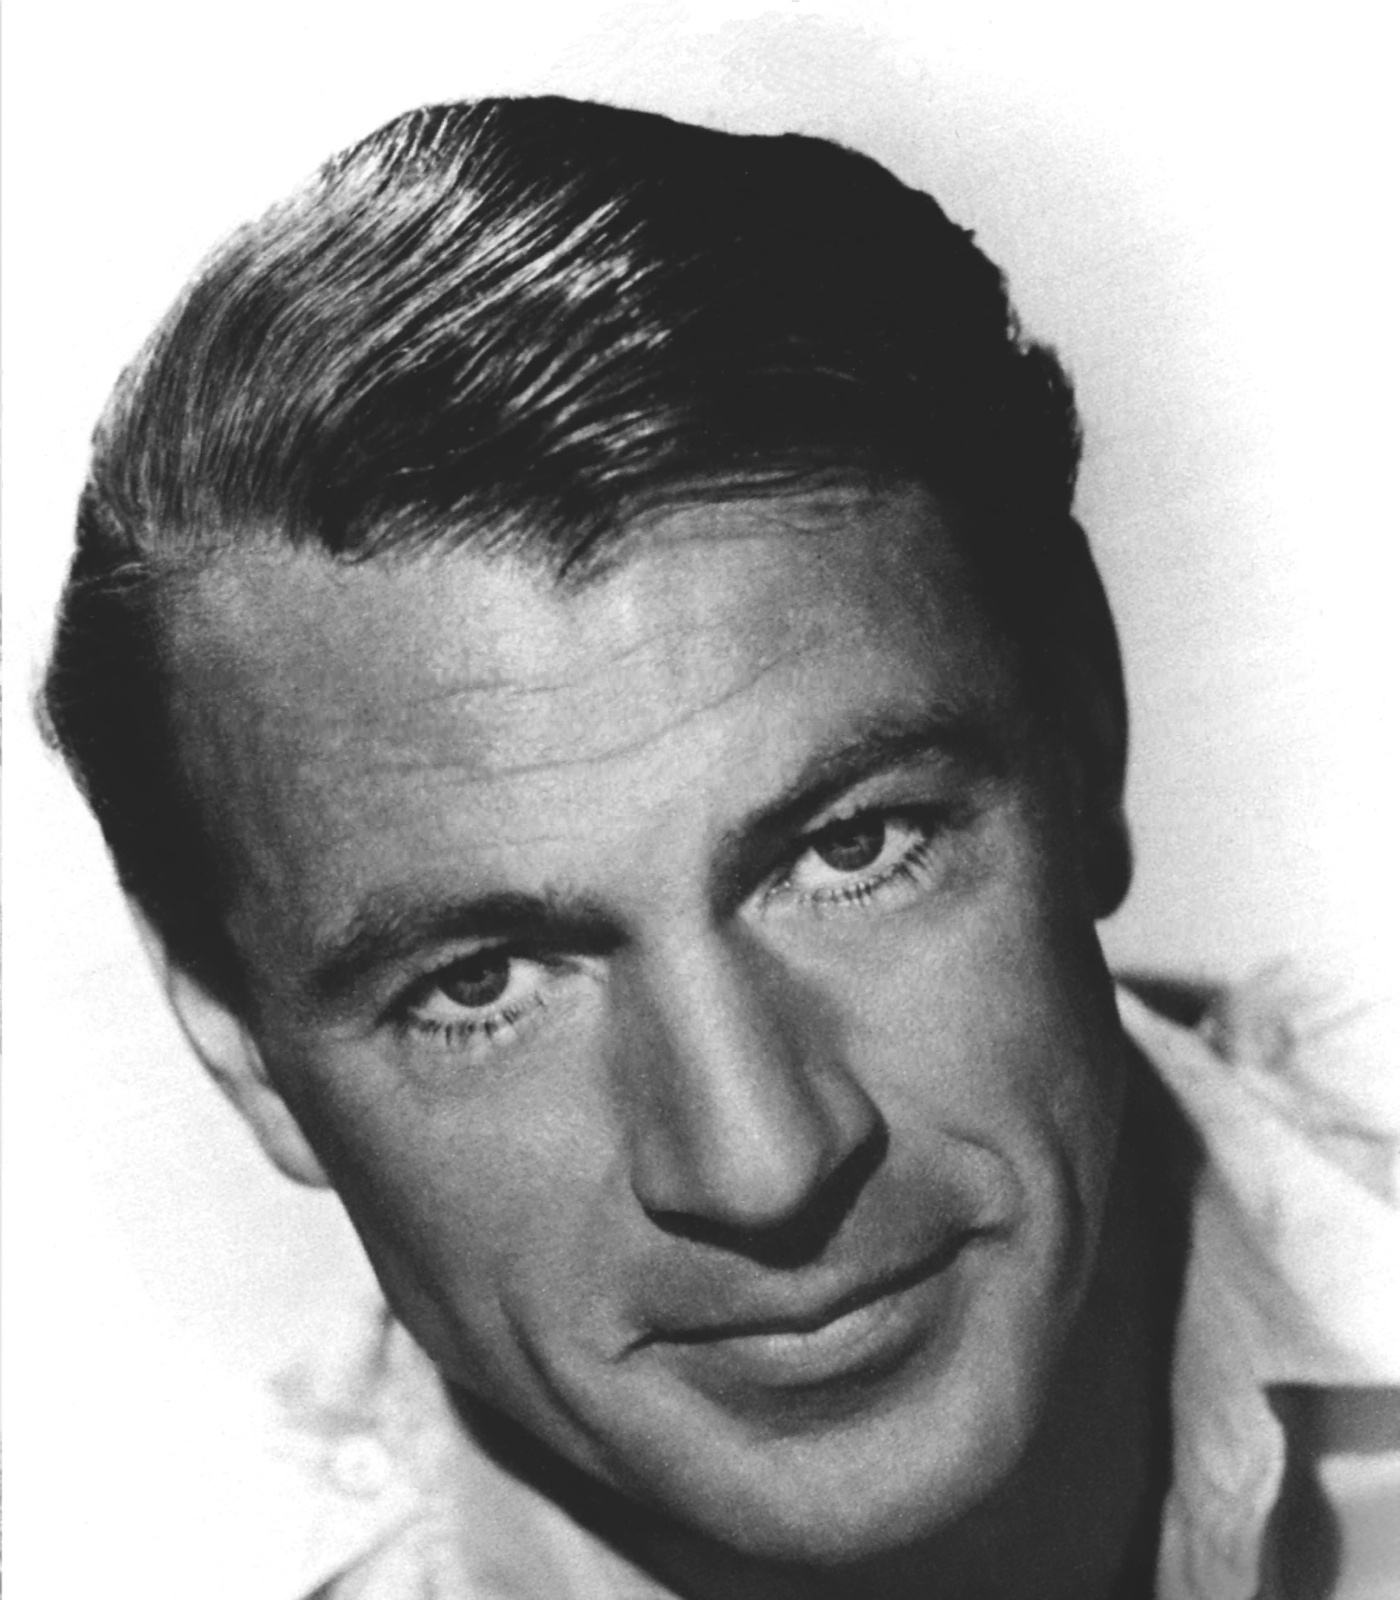 gary cooper tyler txgary cooper – puttin' on the ritz, gary cooper красноярск, gary cooper super duper, gary cooper high noon, gary cooper mbti, gary cooper actor, gary cooper strong silent, gary cooper wikipedia, gary cooper morroco, gary cooper lupe velez, gary cooper height, gary cooper filmography, gary cooper net worth, gary cooper and patricia neal movies, gary cooper movies, gary cooper lyrics, gary cooper tyler tx, gary cooper best films, gary cooper american hero, gary cooper песня